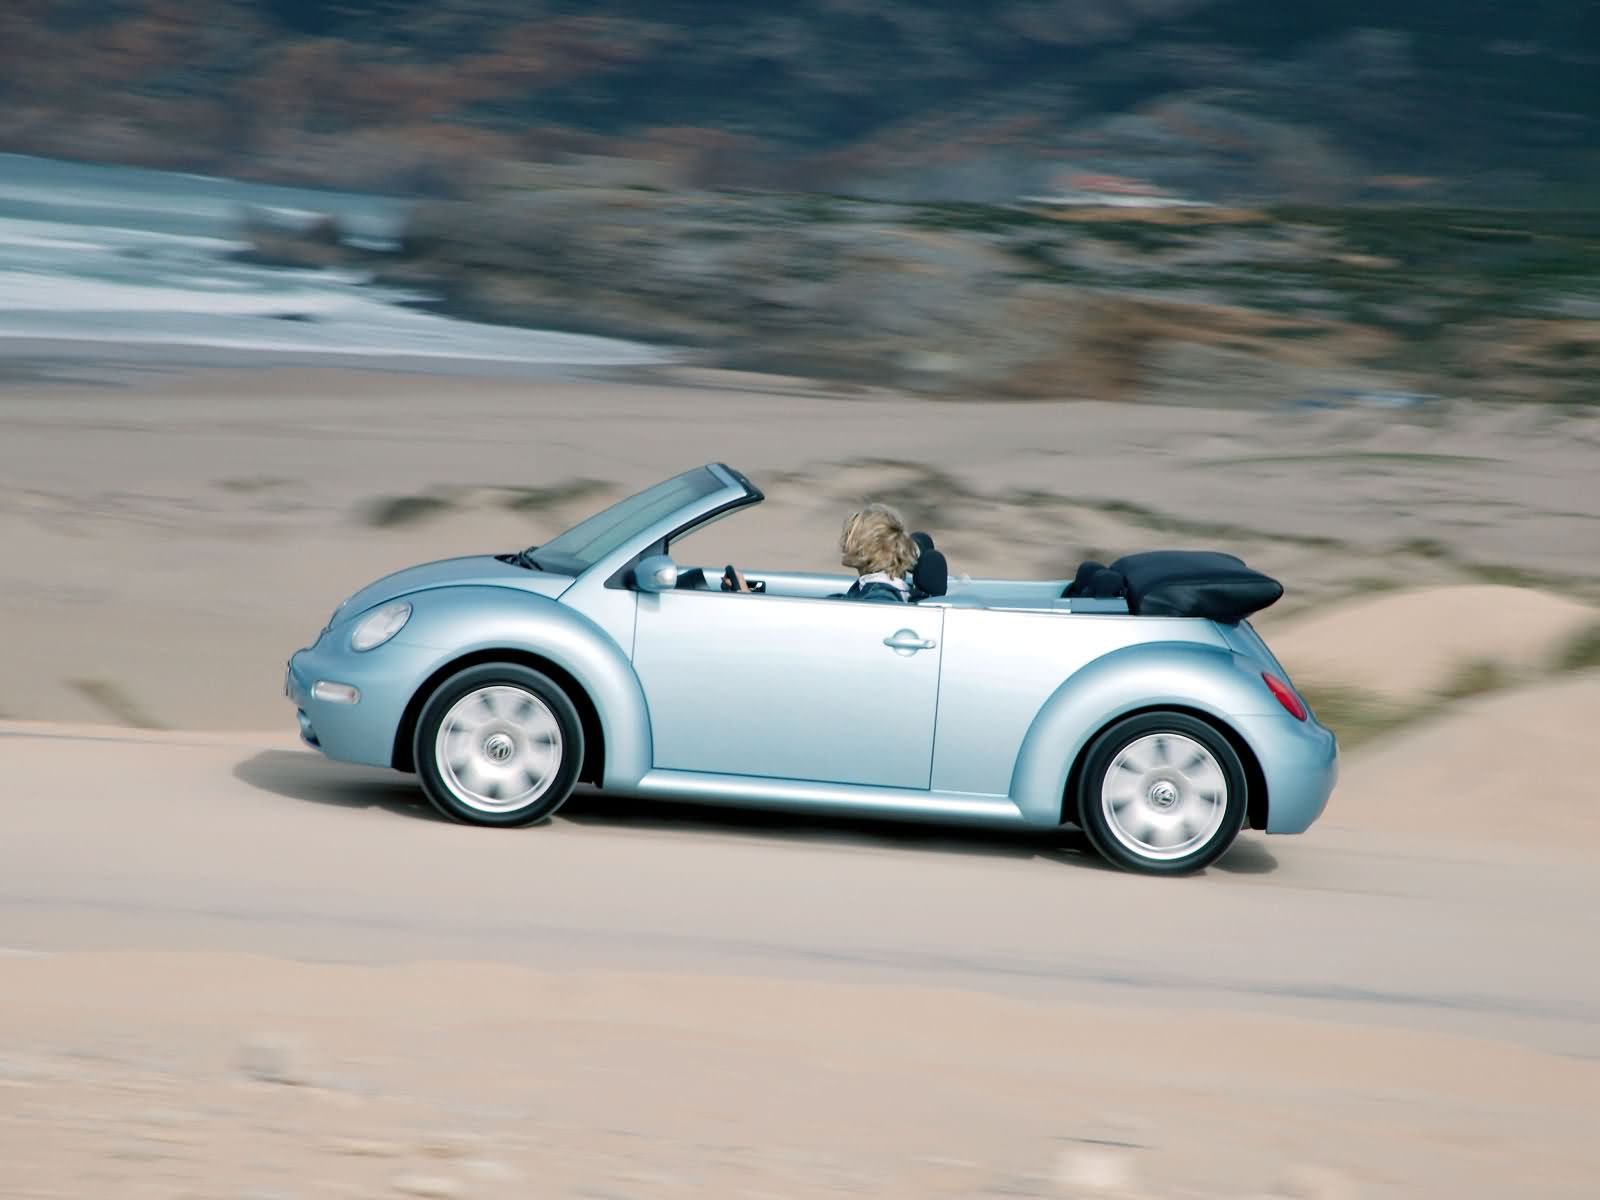 volkswagen new beetle cabriolet photos photo gallery page 4. Black Bedroom Furniture Sets. Home Design Ideas